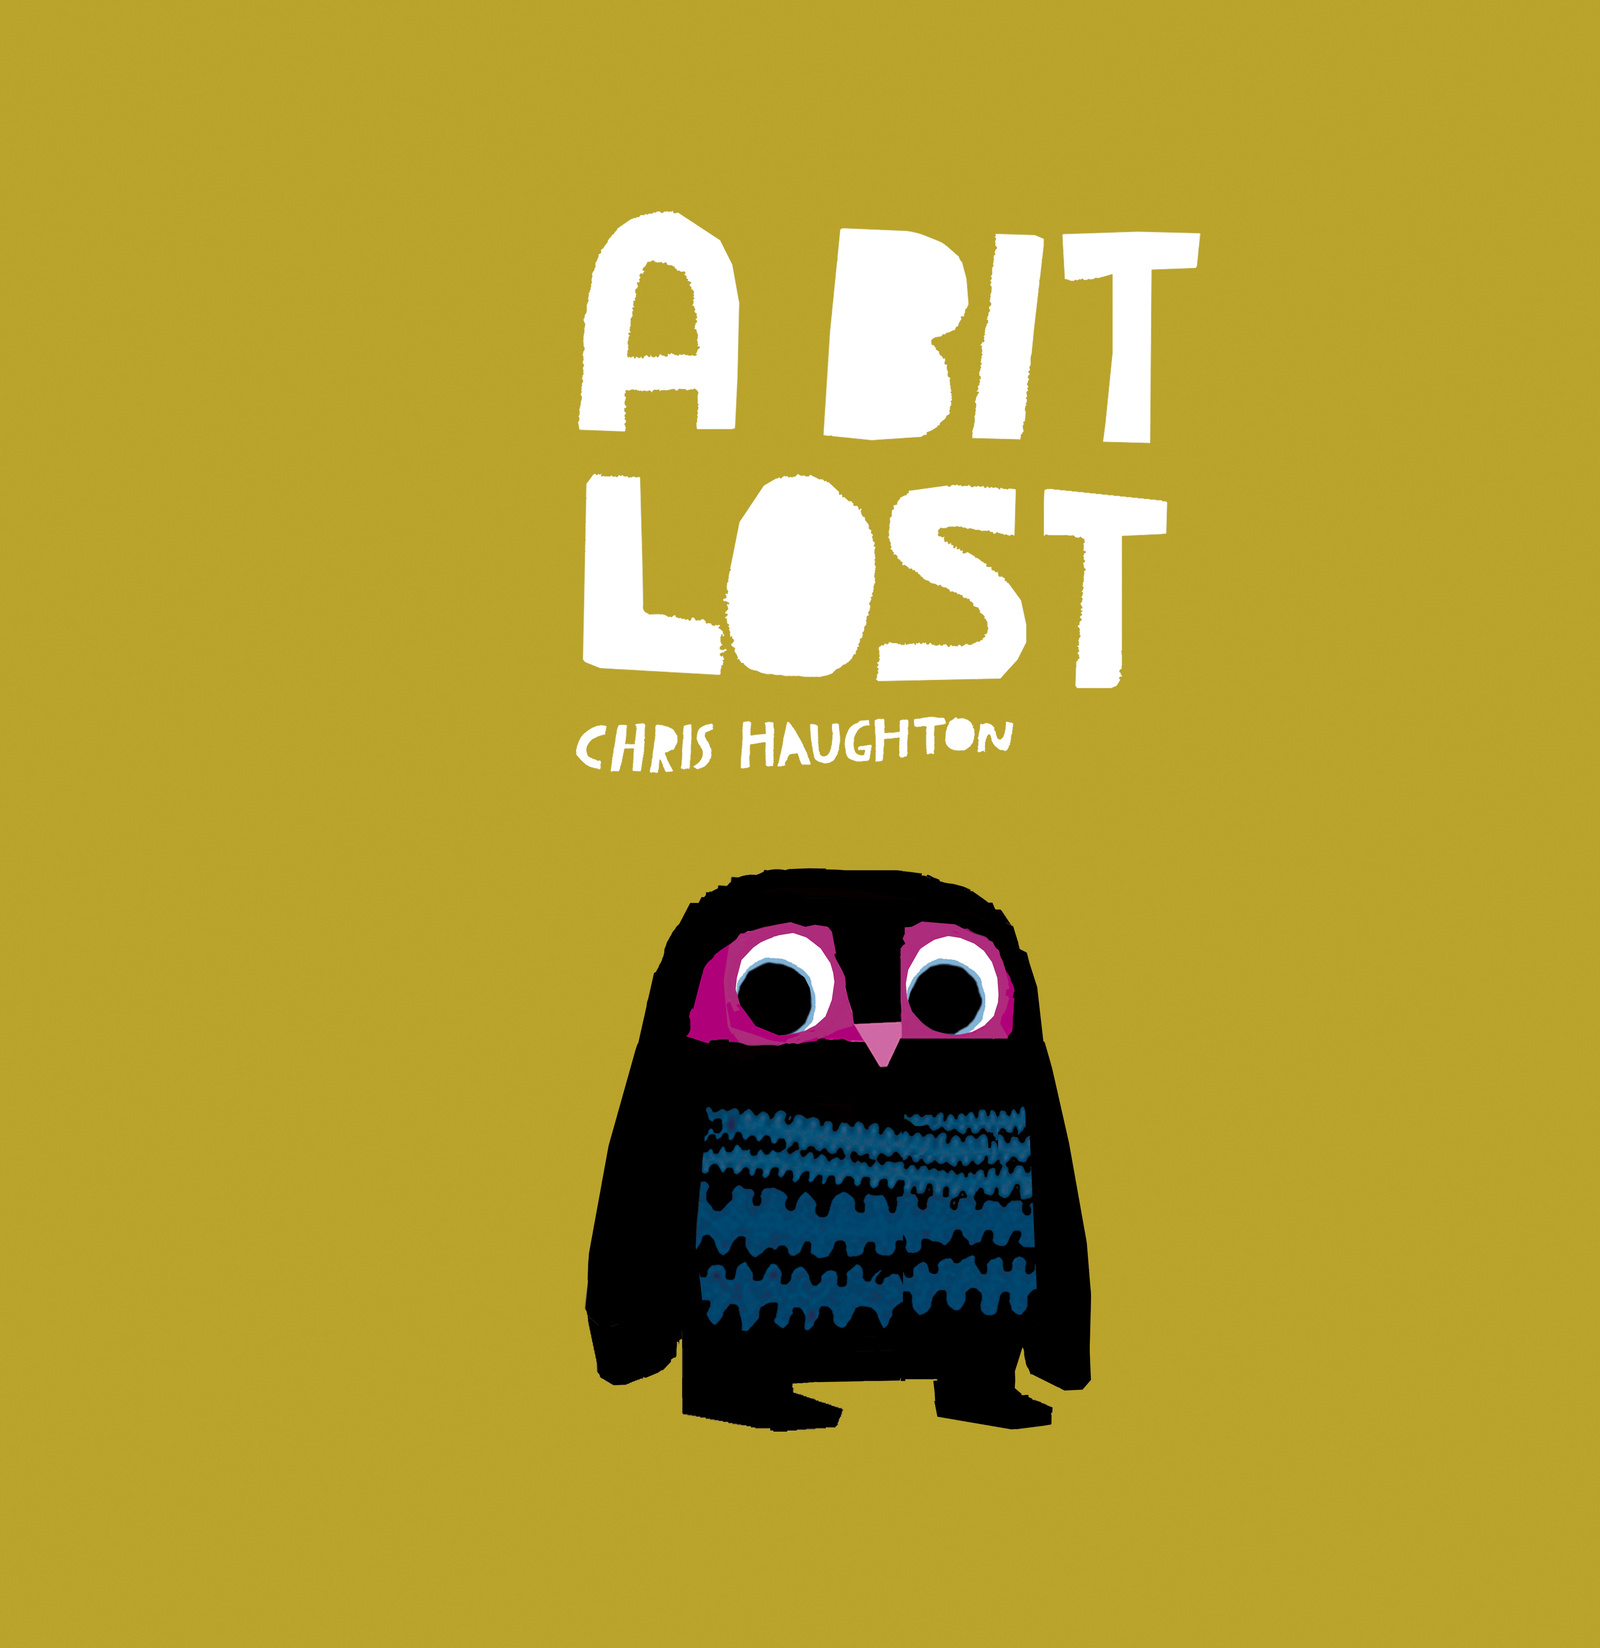 A bit lost. Chris Haughton. Walker books. 2013